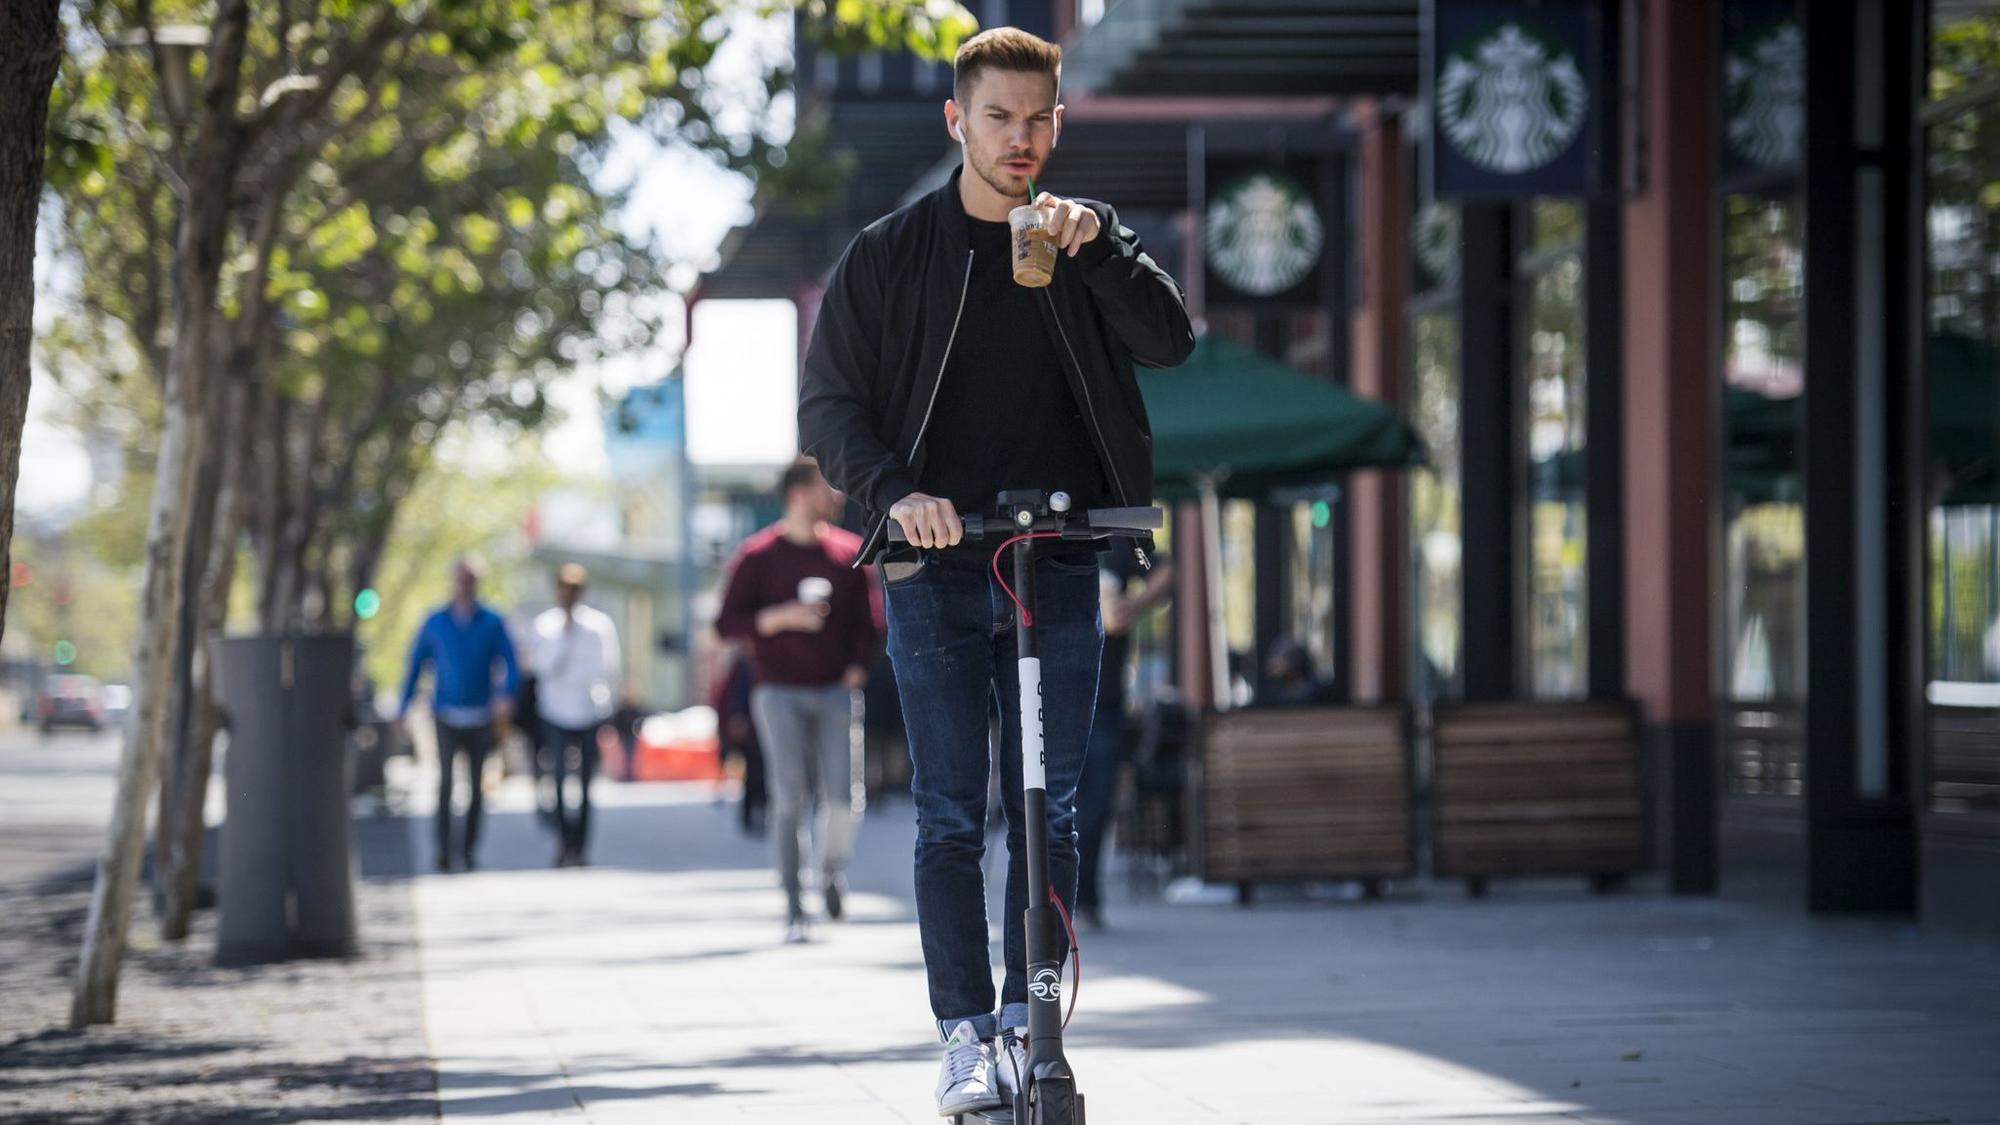 Bird A Fleet Of Dockless Electric Scooters Launches In